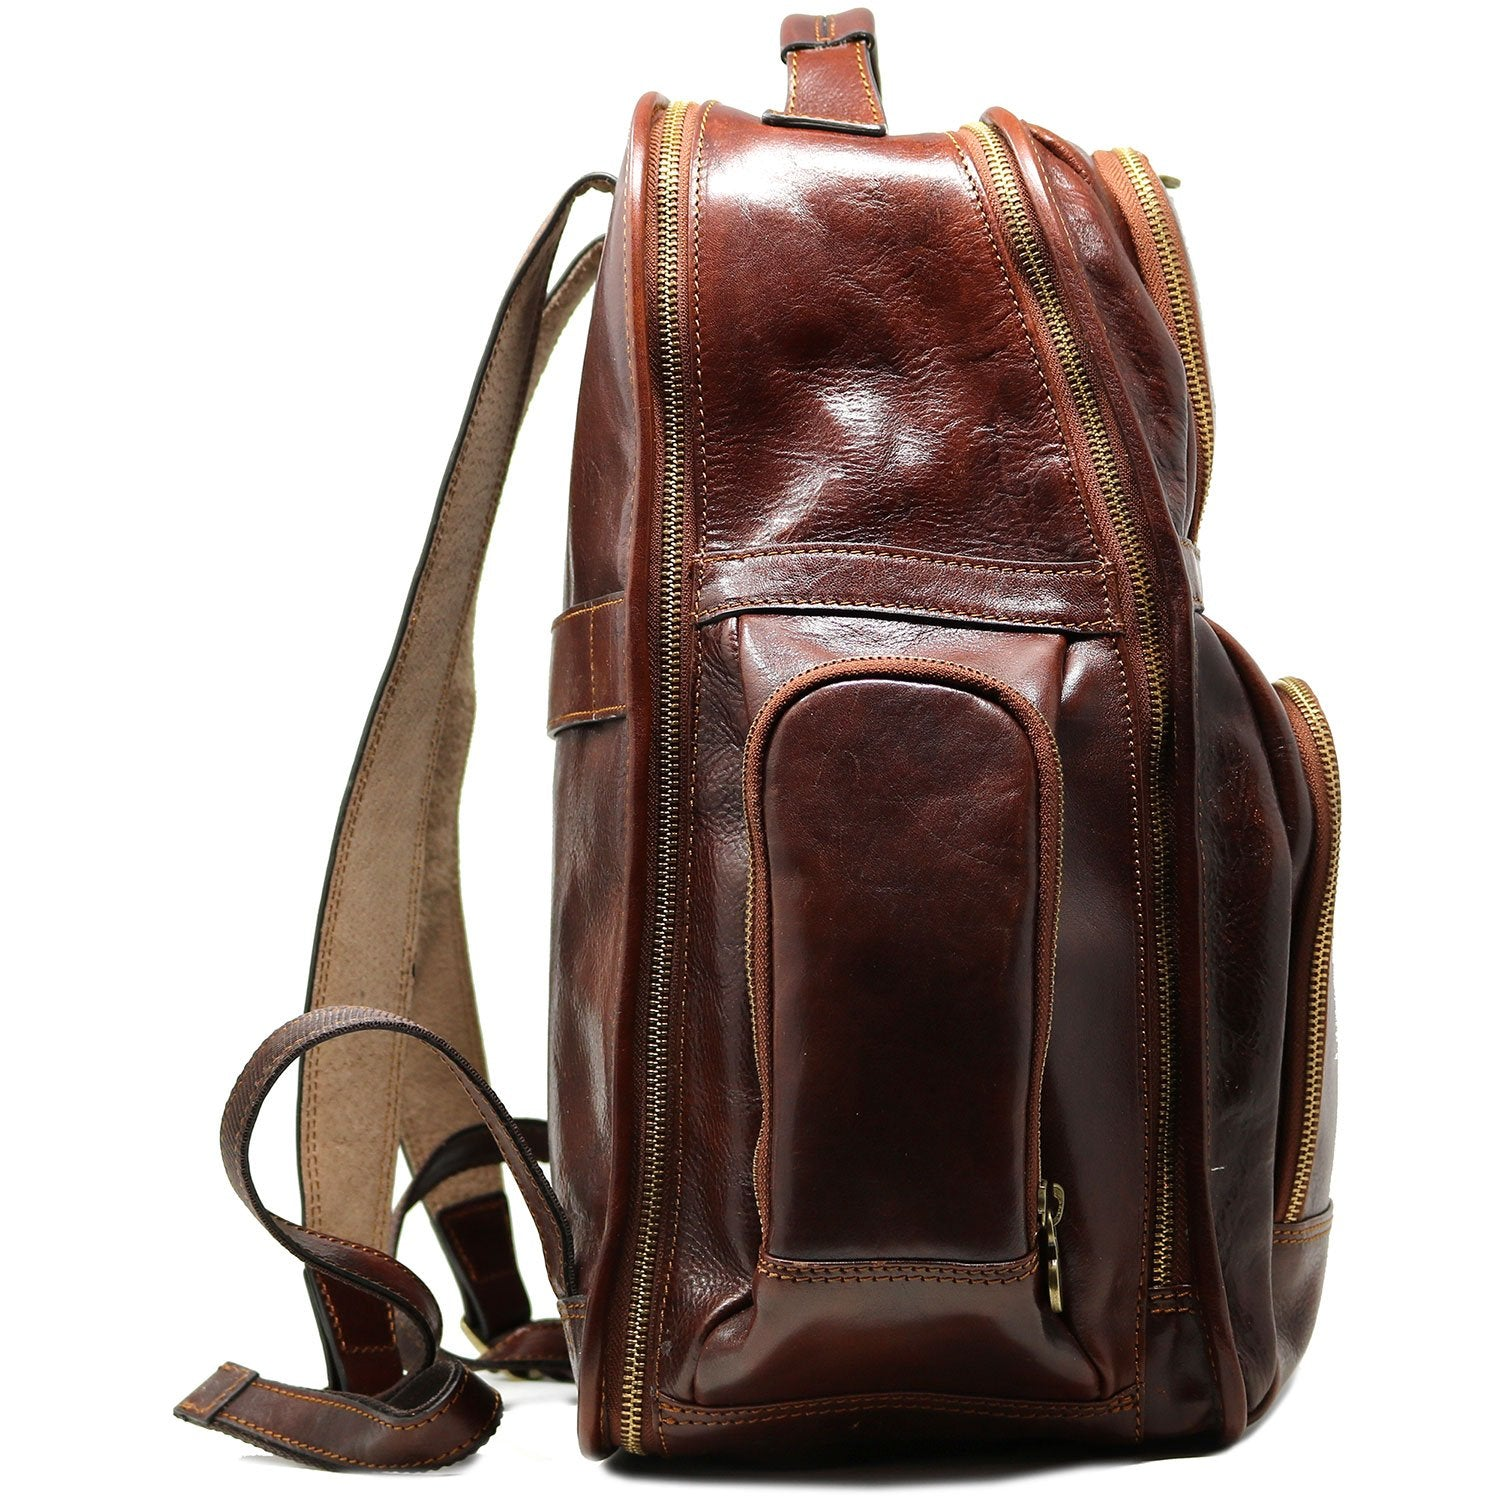 Leather Backpack Floto Italian Cargo Pocket Knapsack Military Pack Vecchio Brown - Full Side View